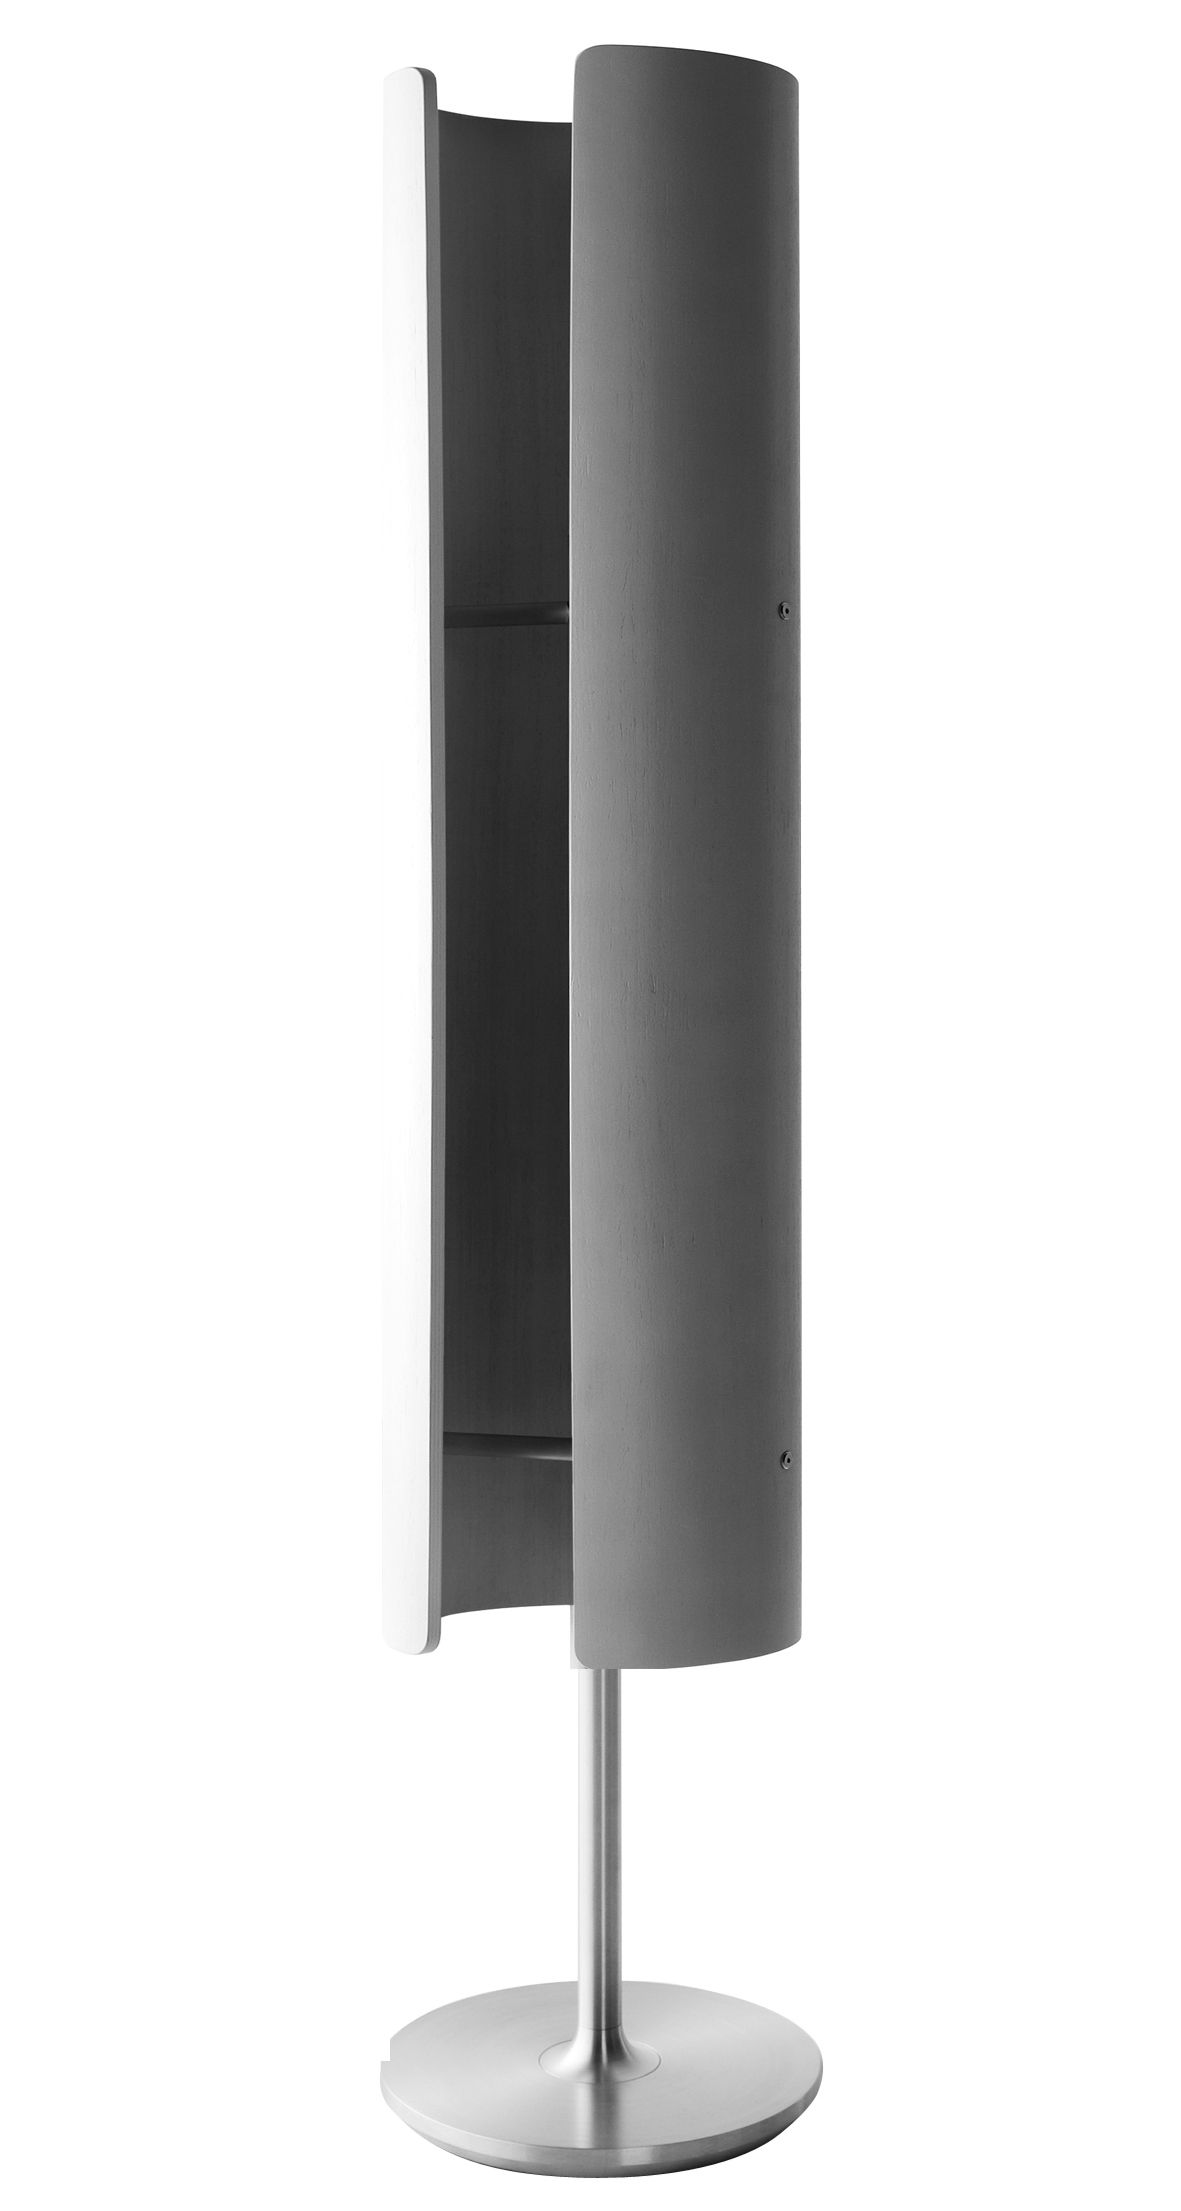 radiateur totem infrarouge et mobile h 170 cm ch ne teint gris i radium. Black Bedroom Furniture Sets. Home Design Ideas